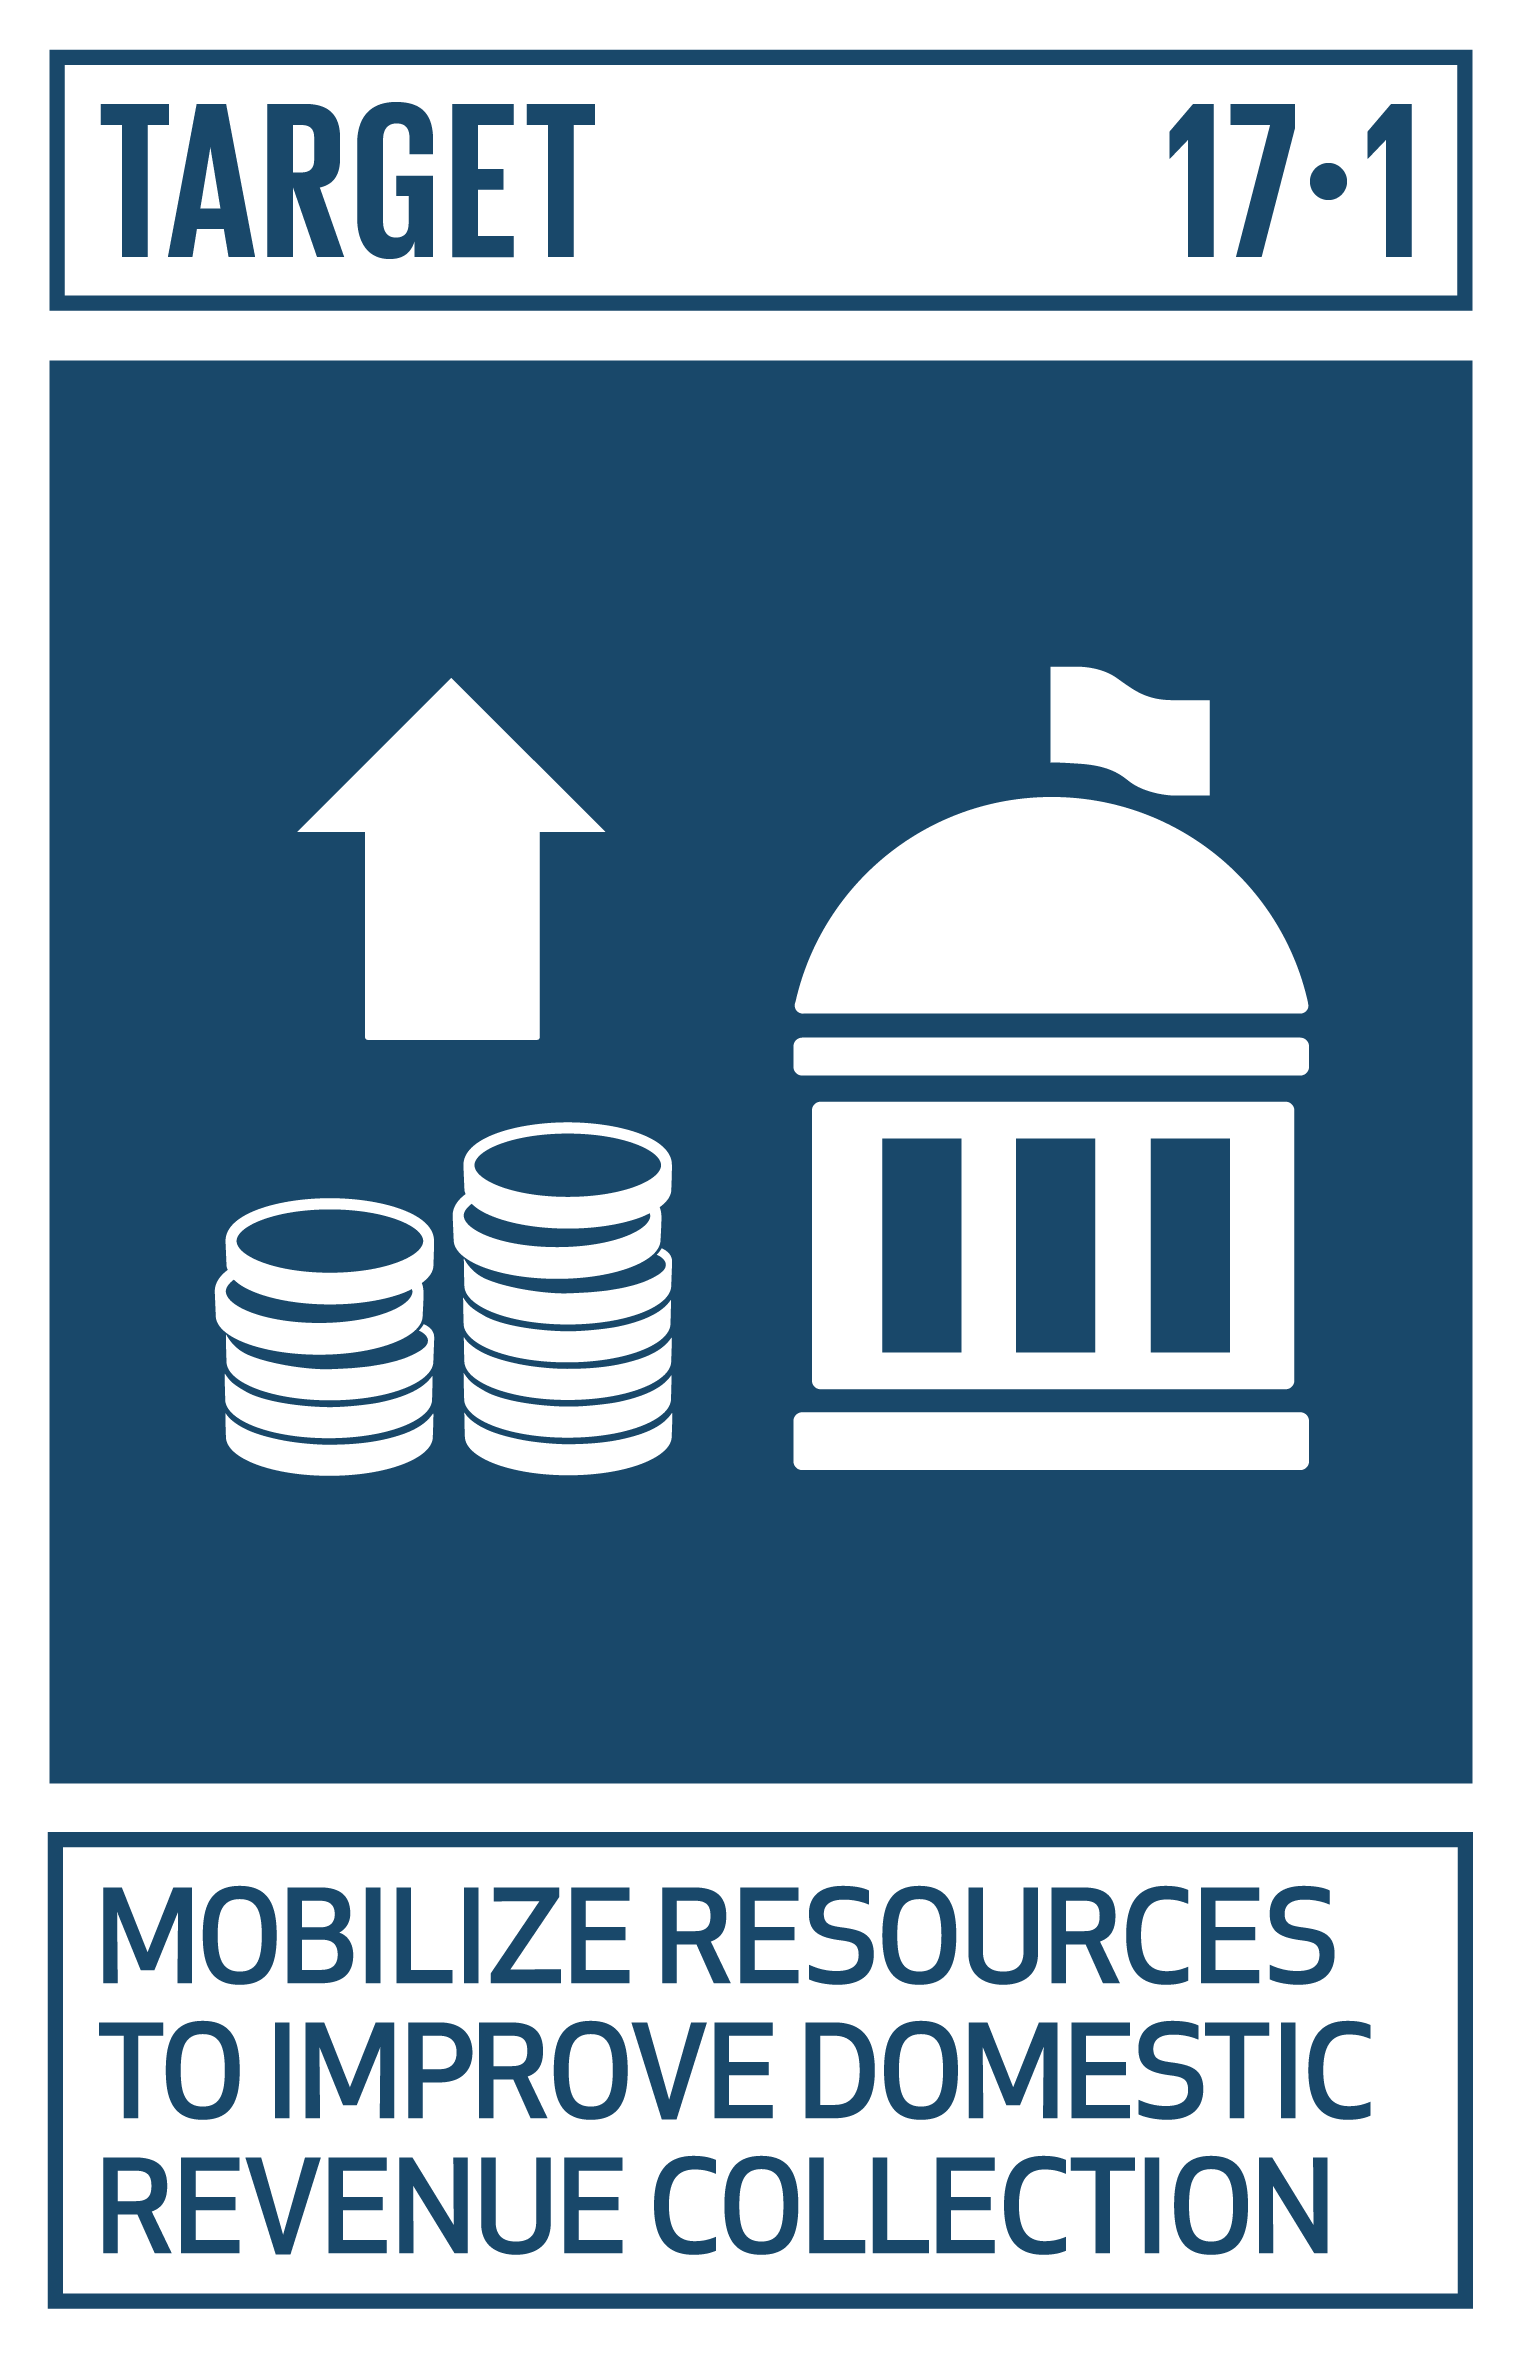 FINANCE TARGET   Strengthen domestic resource mobilization, including through international support to developing countries, to improve domestic capacity for tax and other revenue collection.   INDICATORS    17.1.1  Total government revenue as a proportion of GDP, by source   17.1.2  Proportion of domestic budget funded by domestic taxes